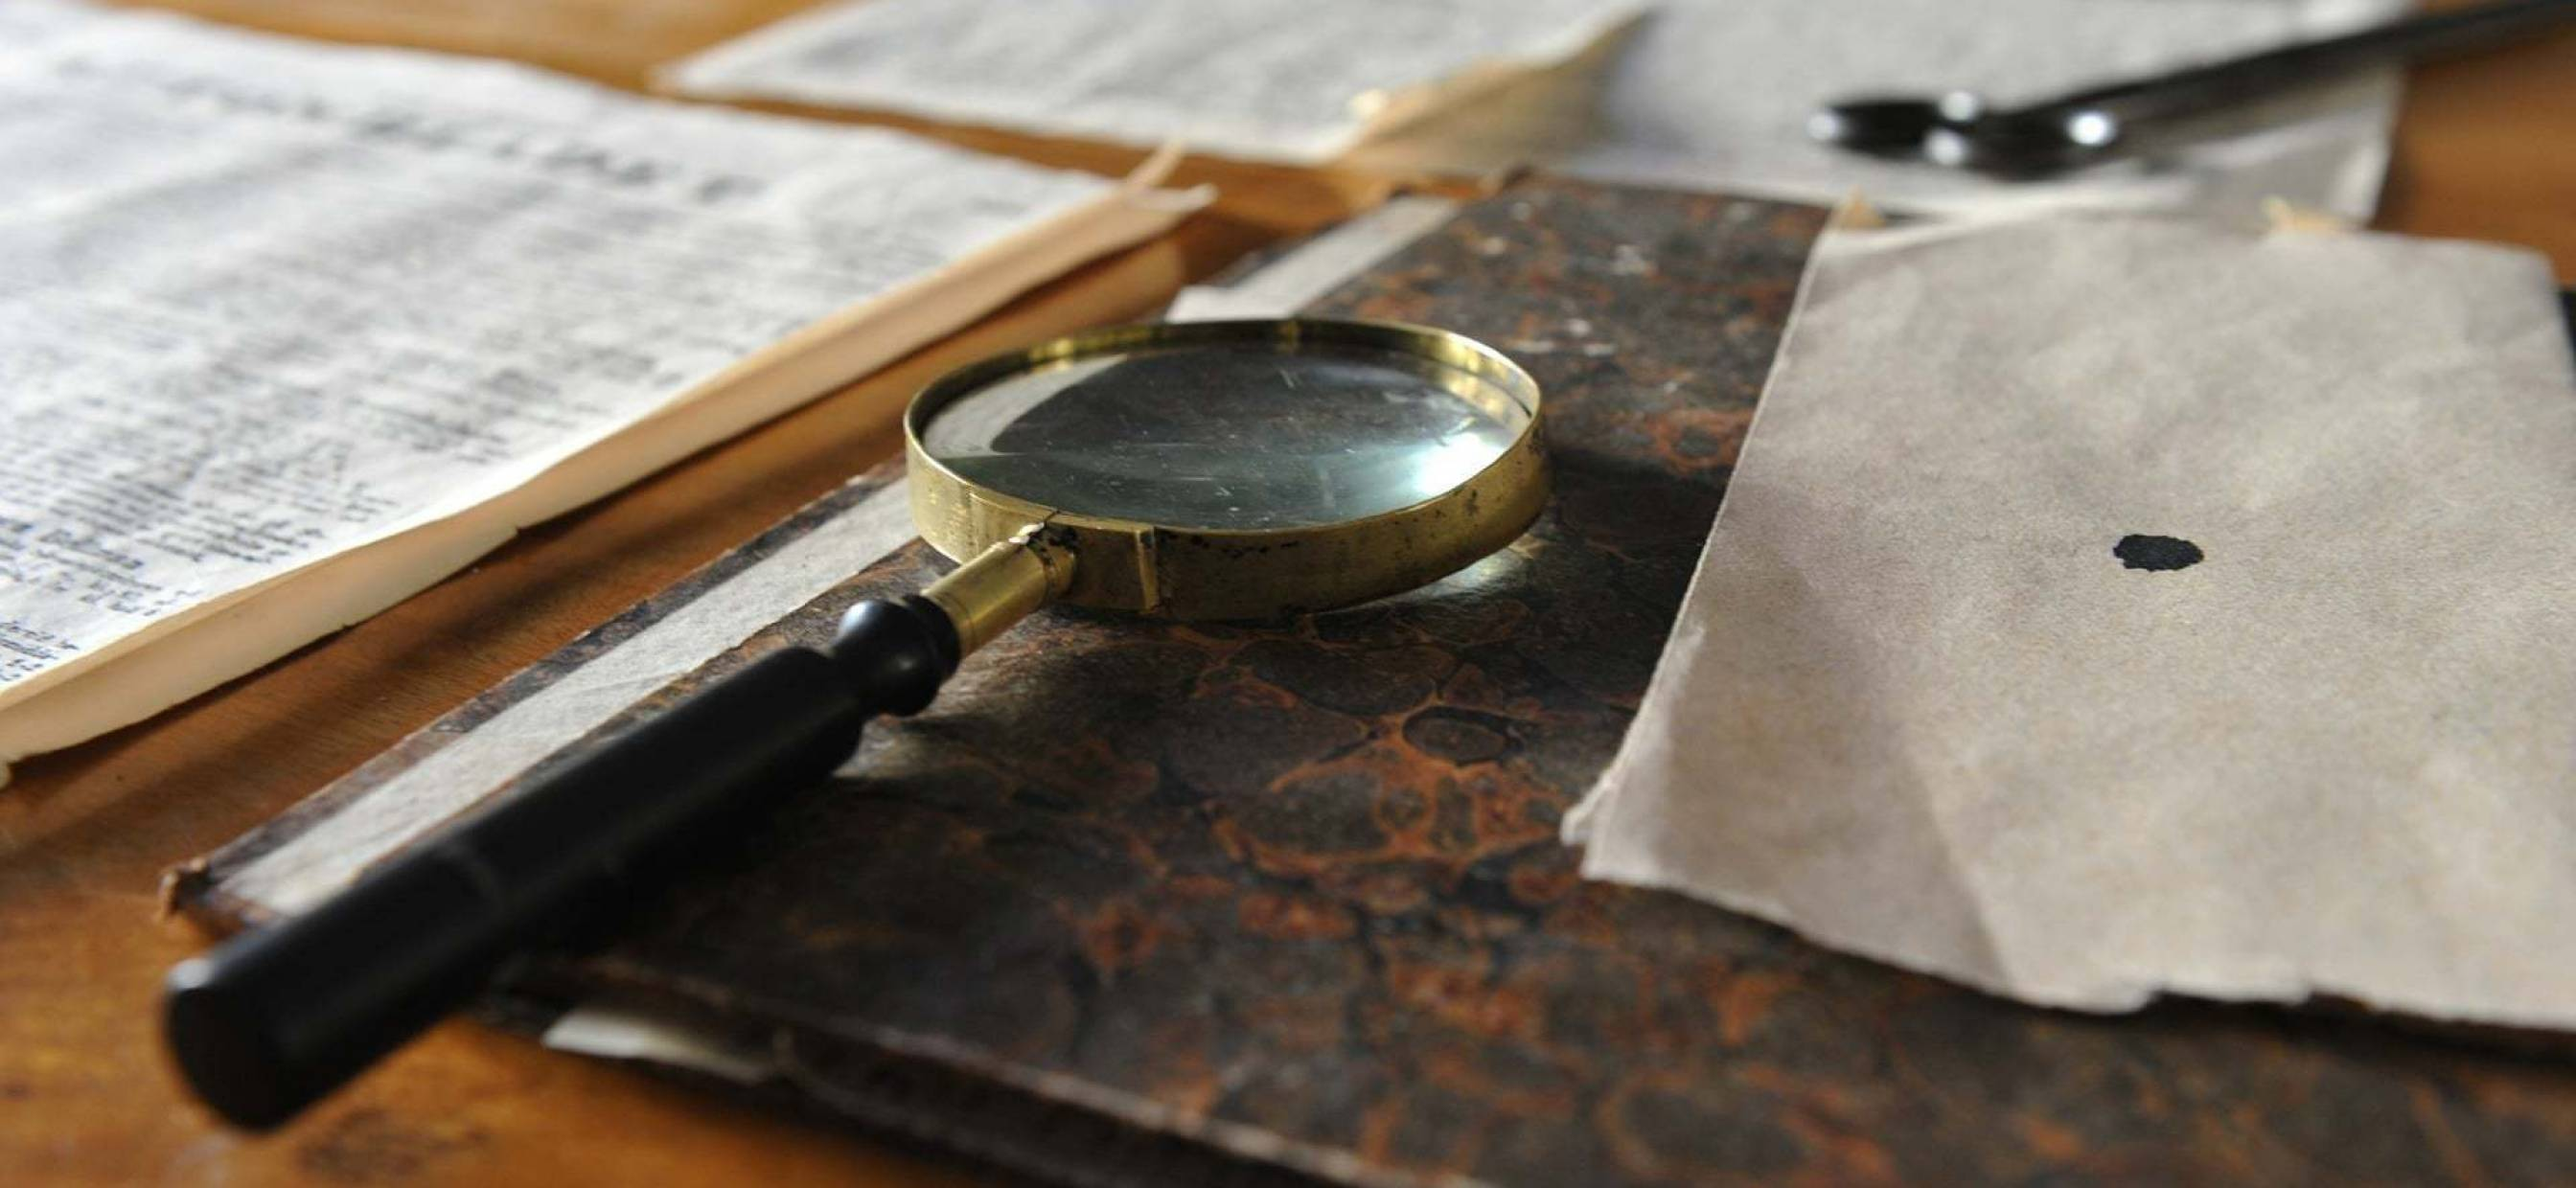 What to Look for on Your Property Deed